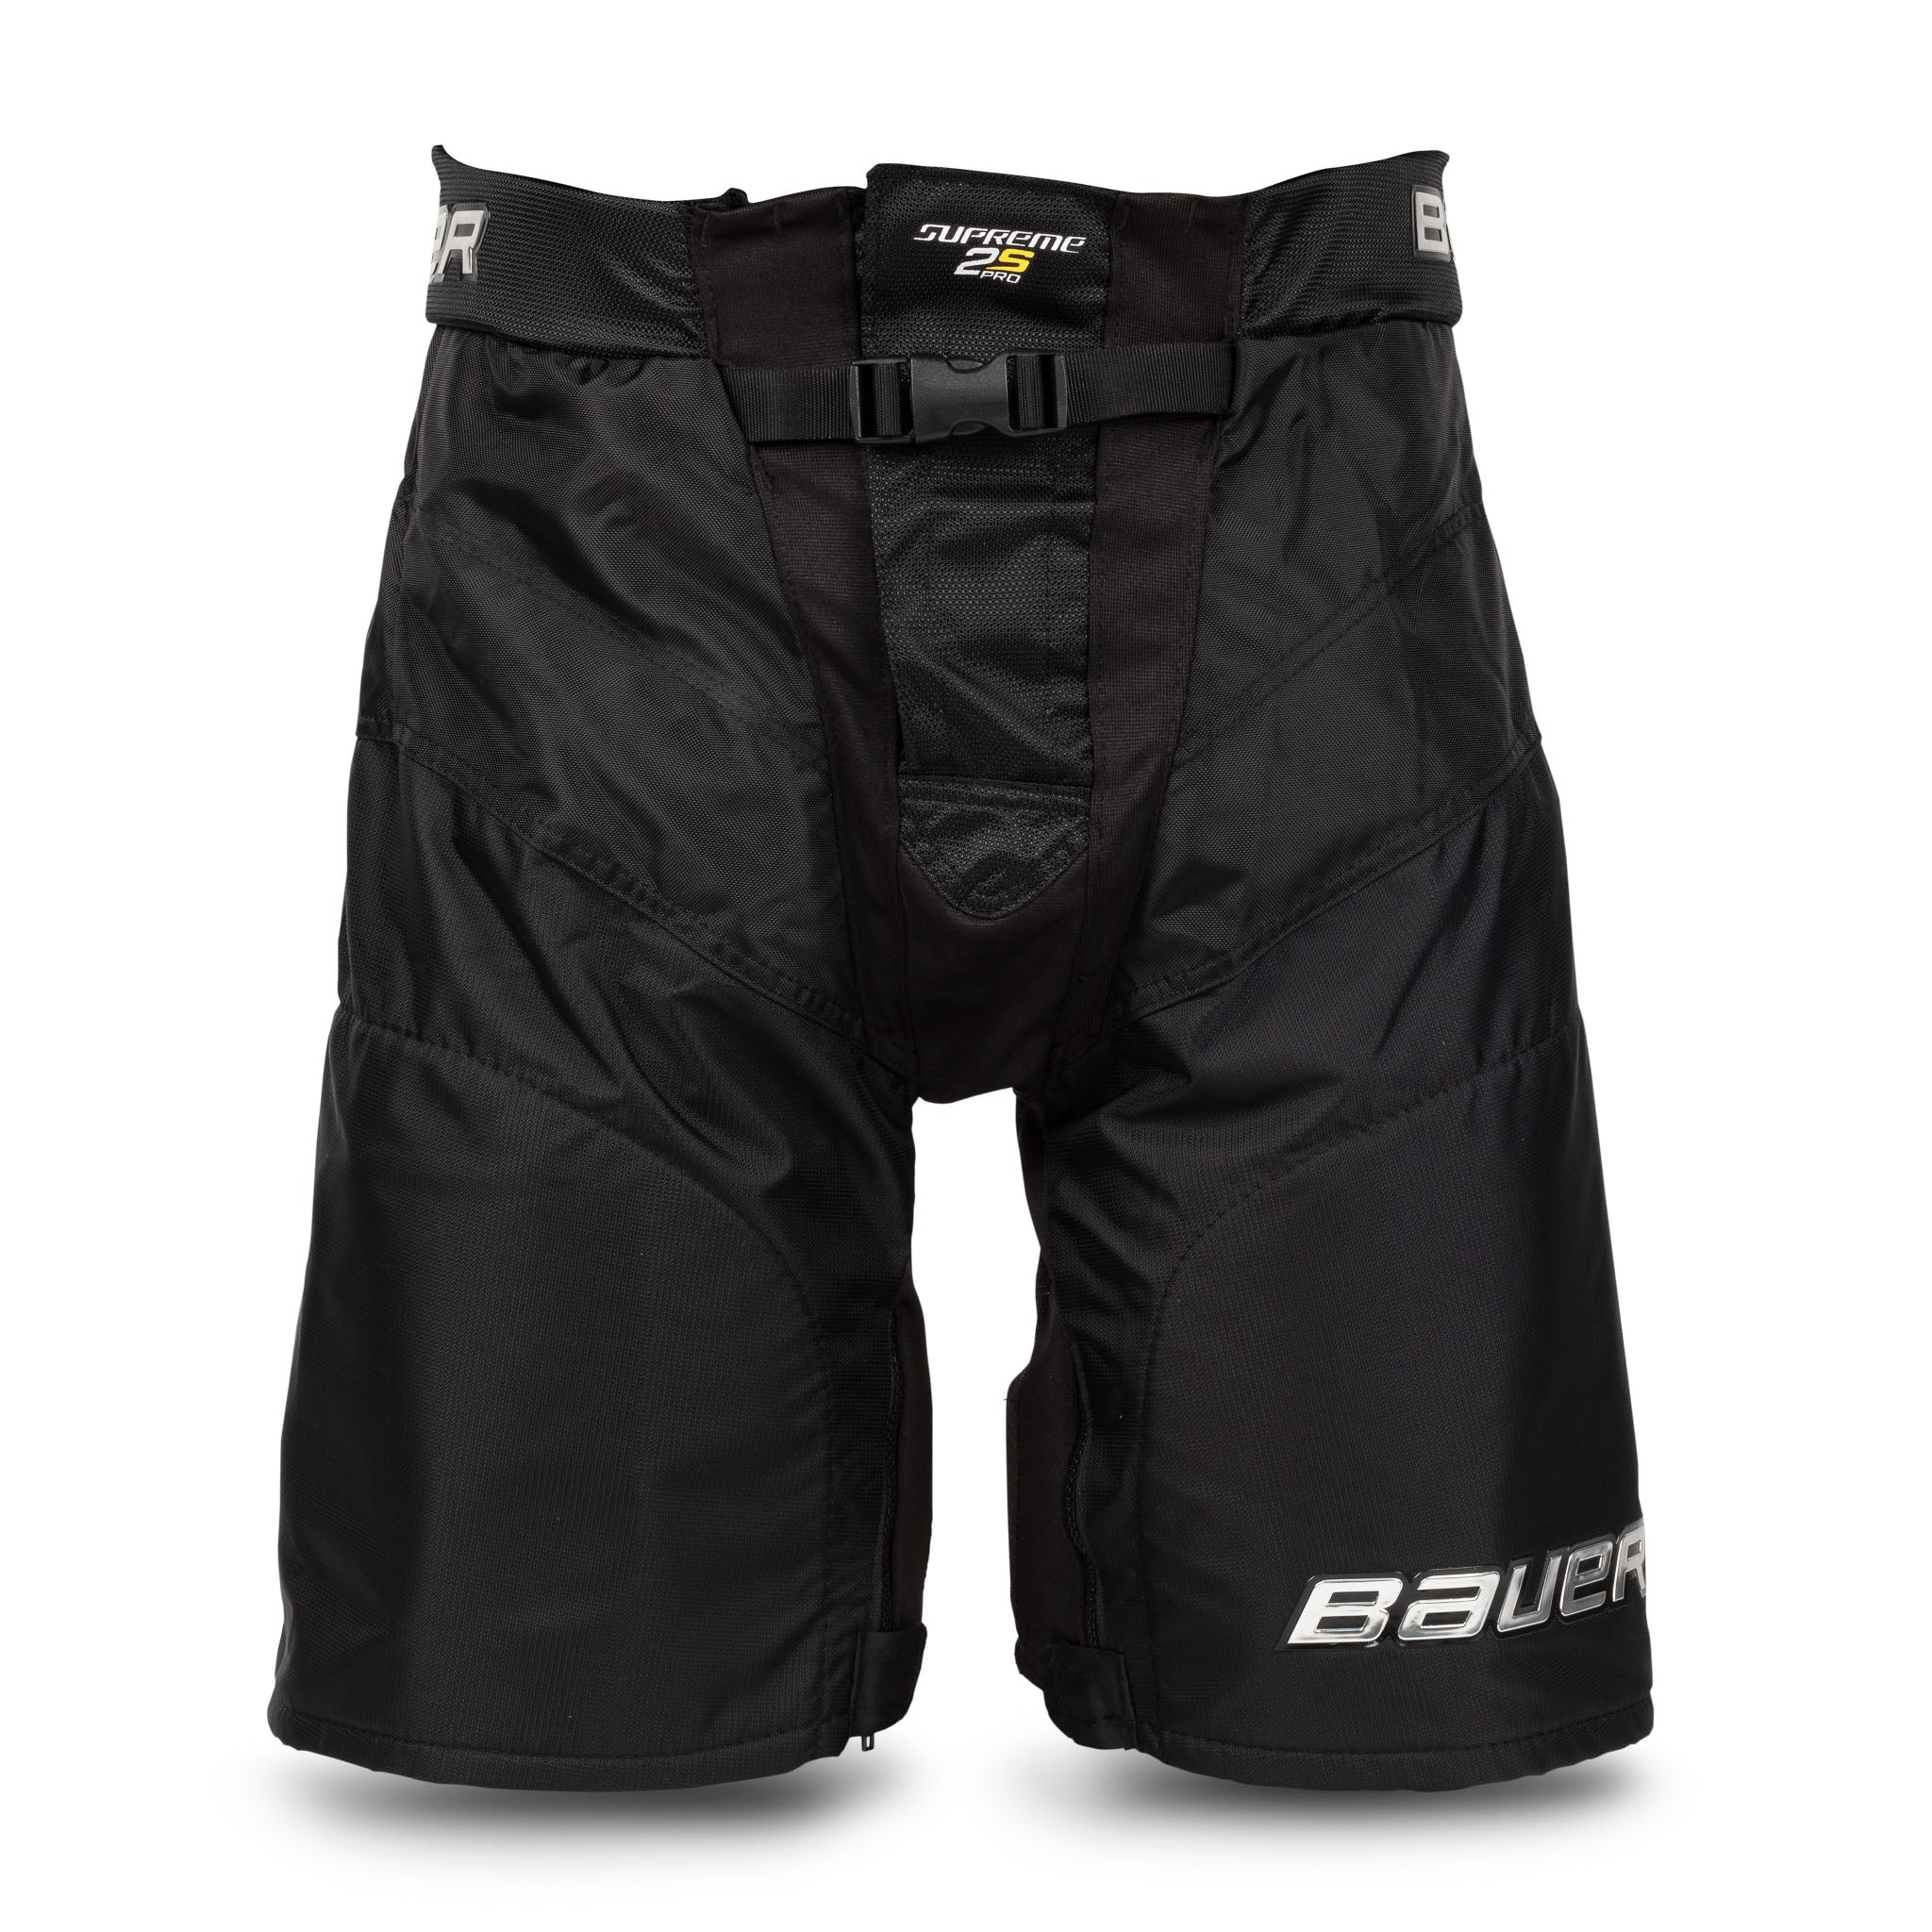 Bauer Supreme 2S Pro Senior Hockey Pant Shells